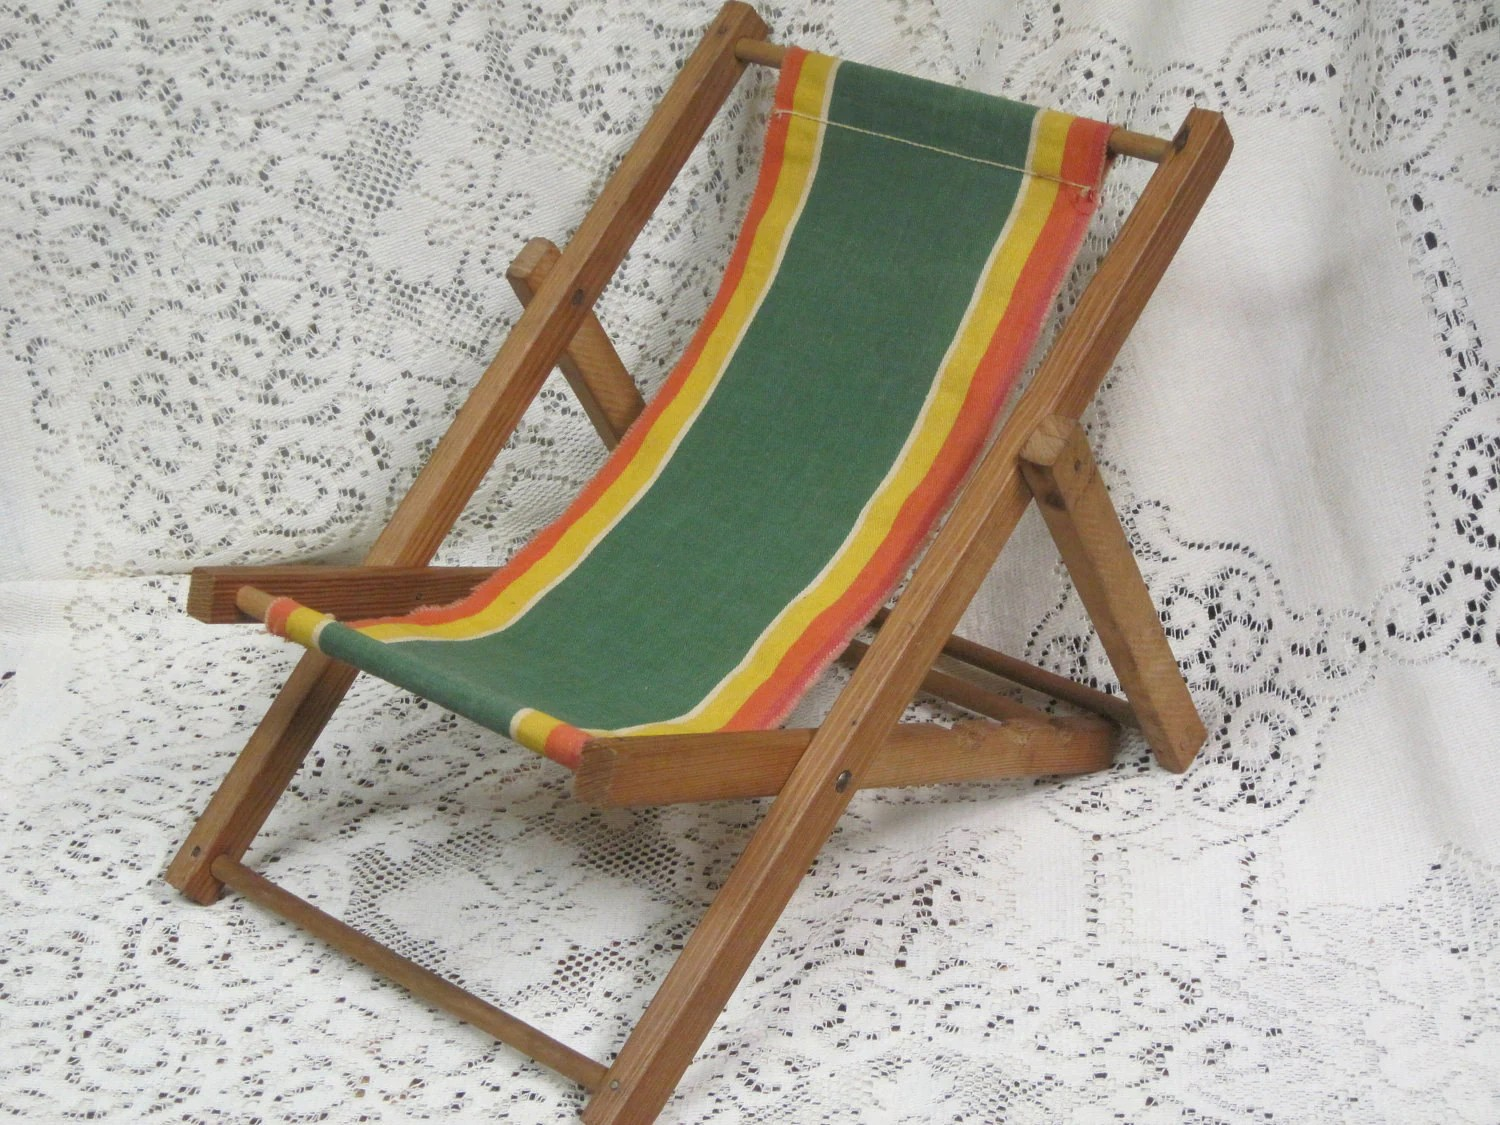 Child Beach Chair Vintage Toy Collectible Toy Retro Child Doll Size Beach Chair